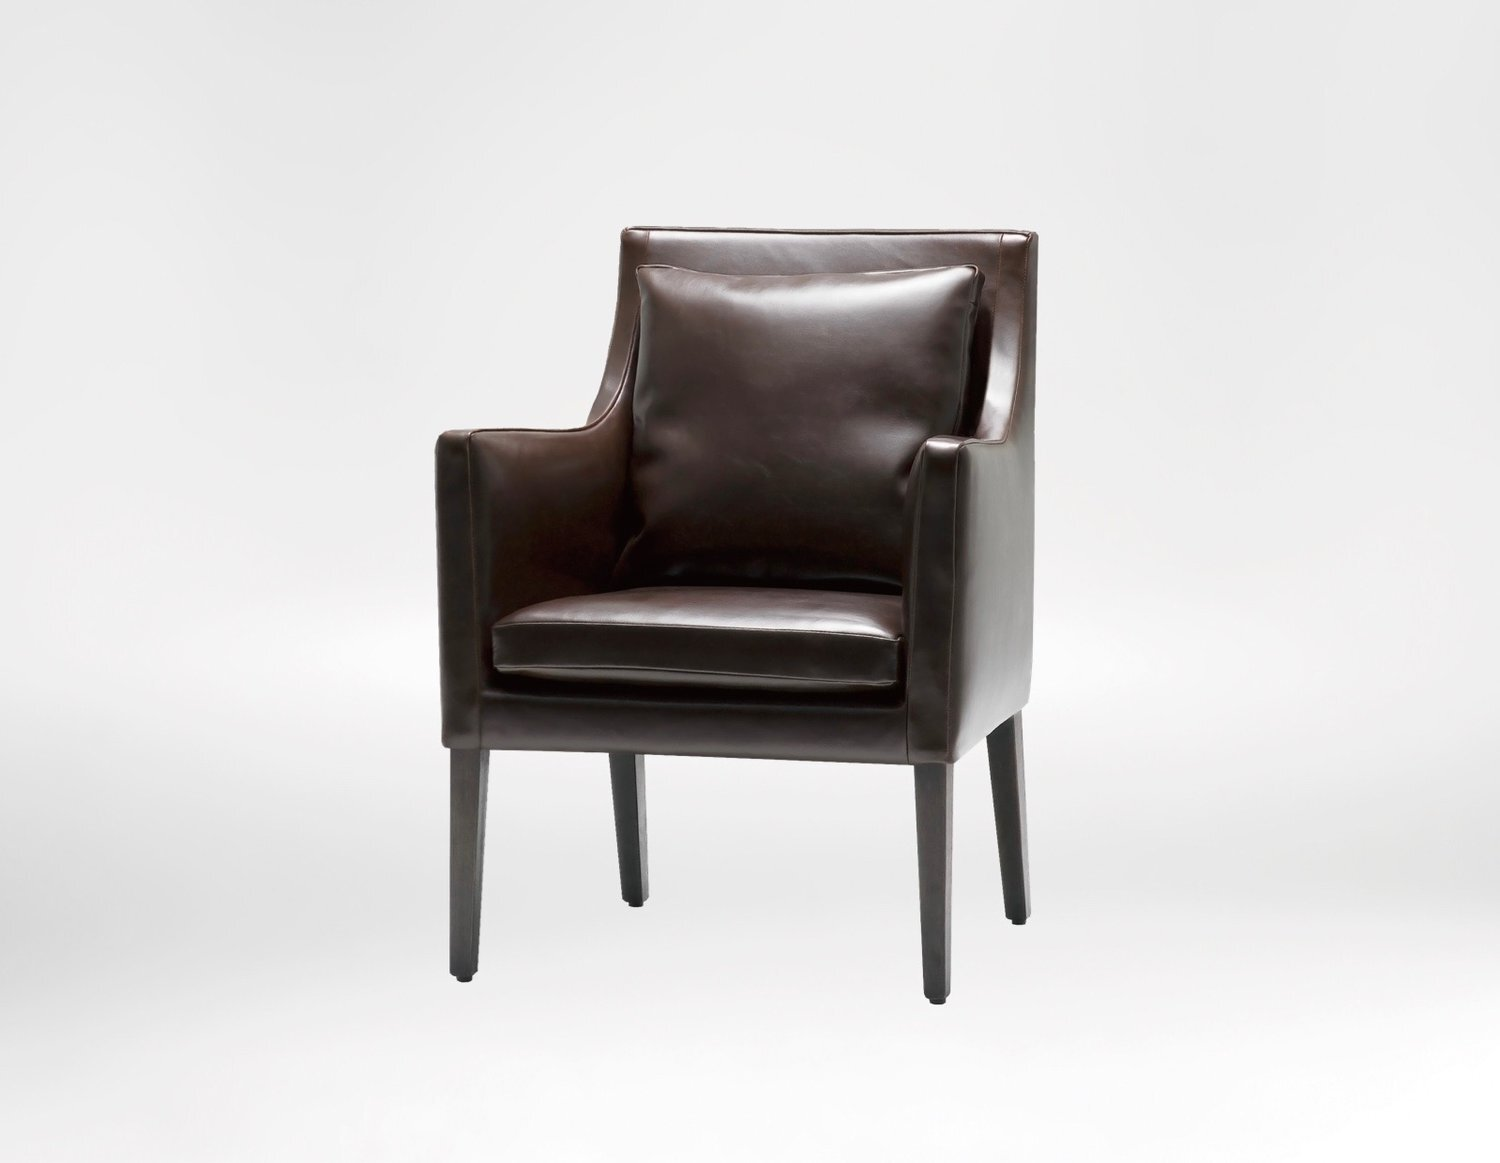 Baroque Chair - The Baroque Dining Chair exudes elegance and class with fine detail, character and comfort.